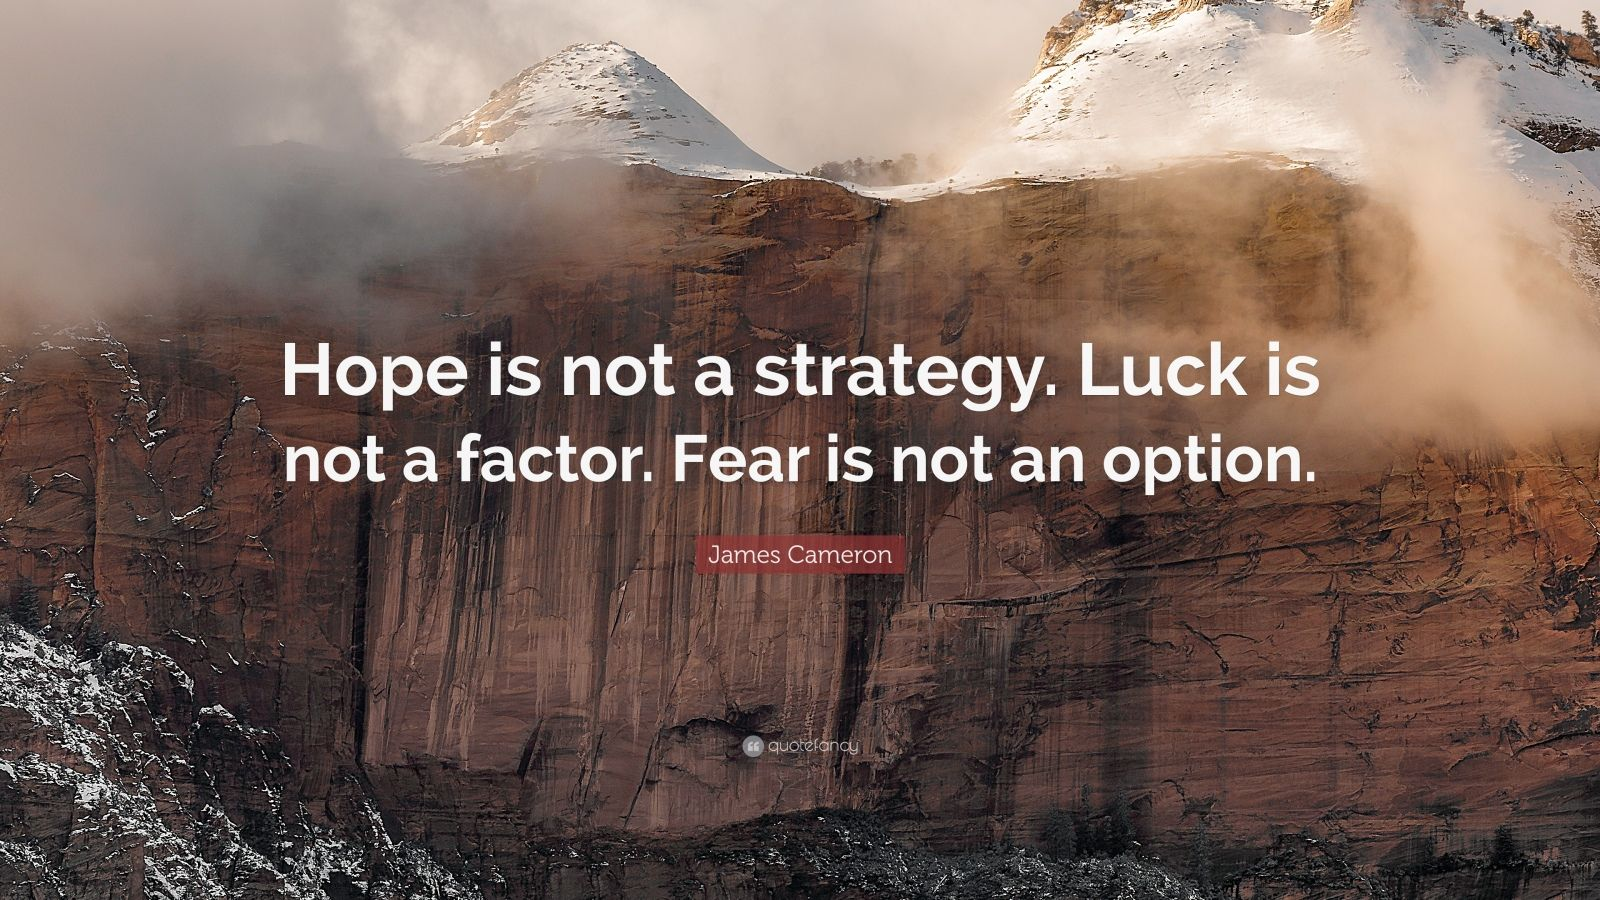 """James Cameron Quote: """"Hope is not a strategy. Luck is not a factor. Fear is not an option."""""""